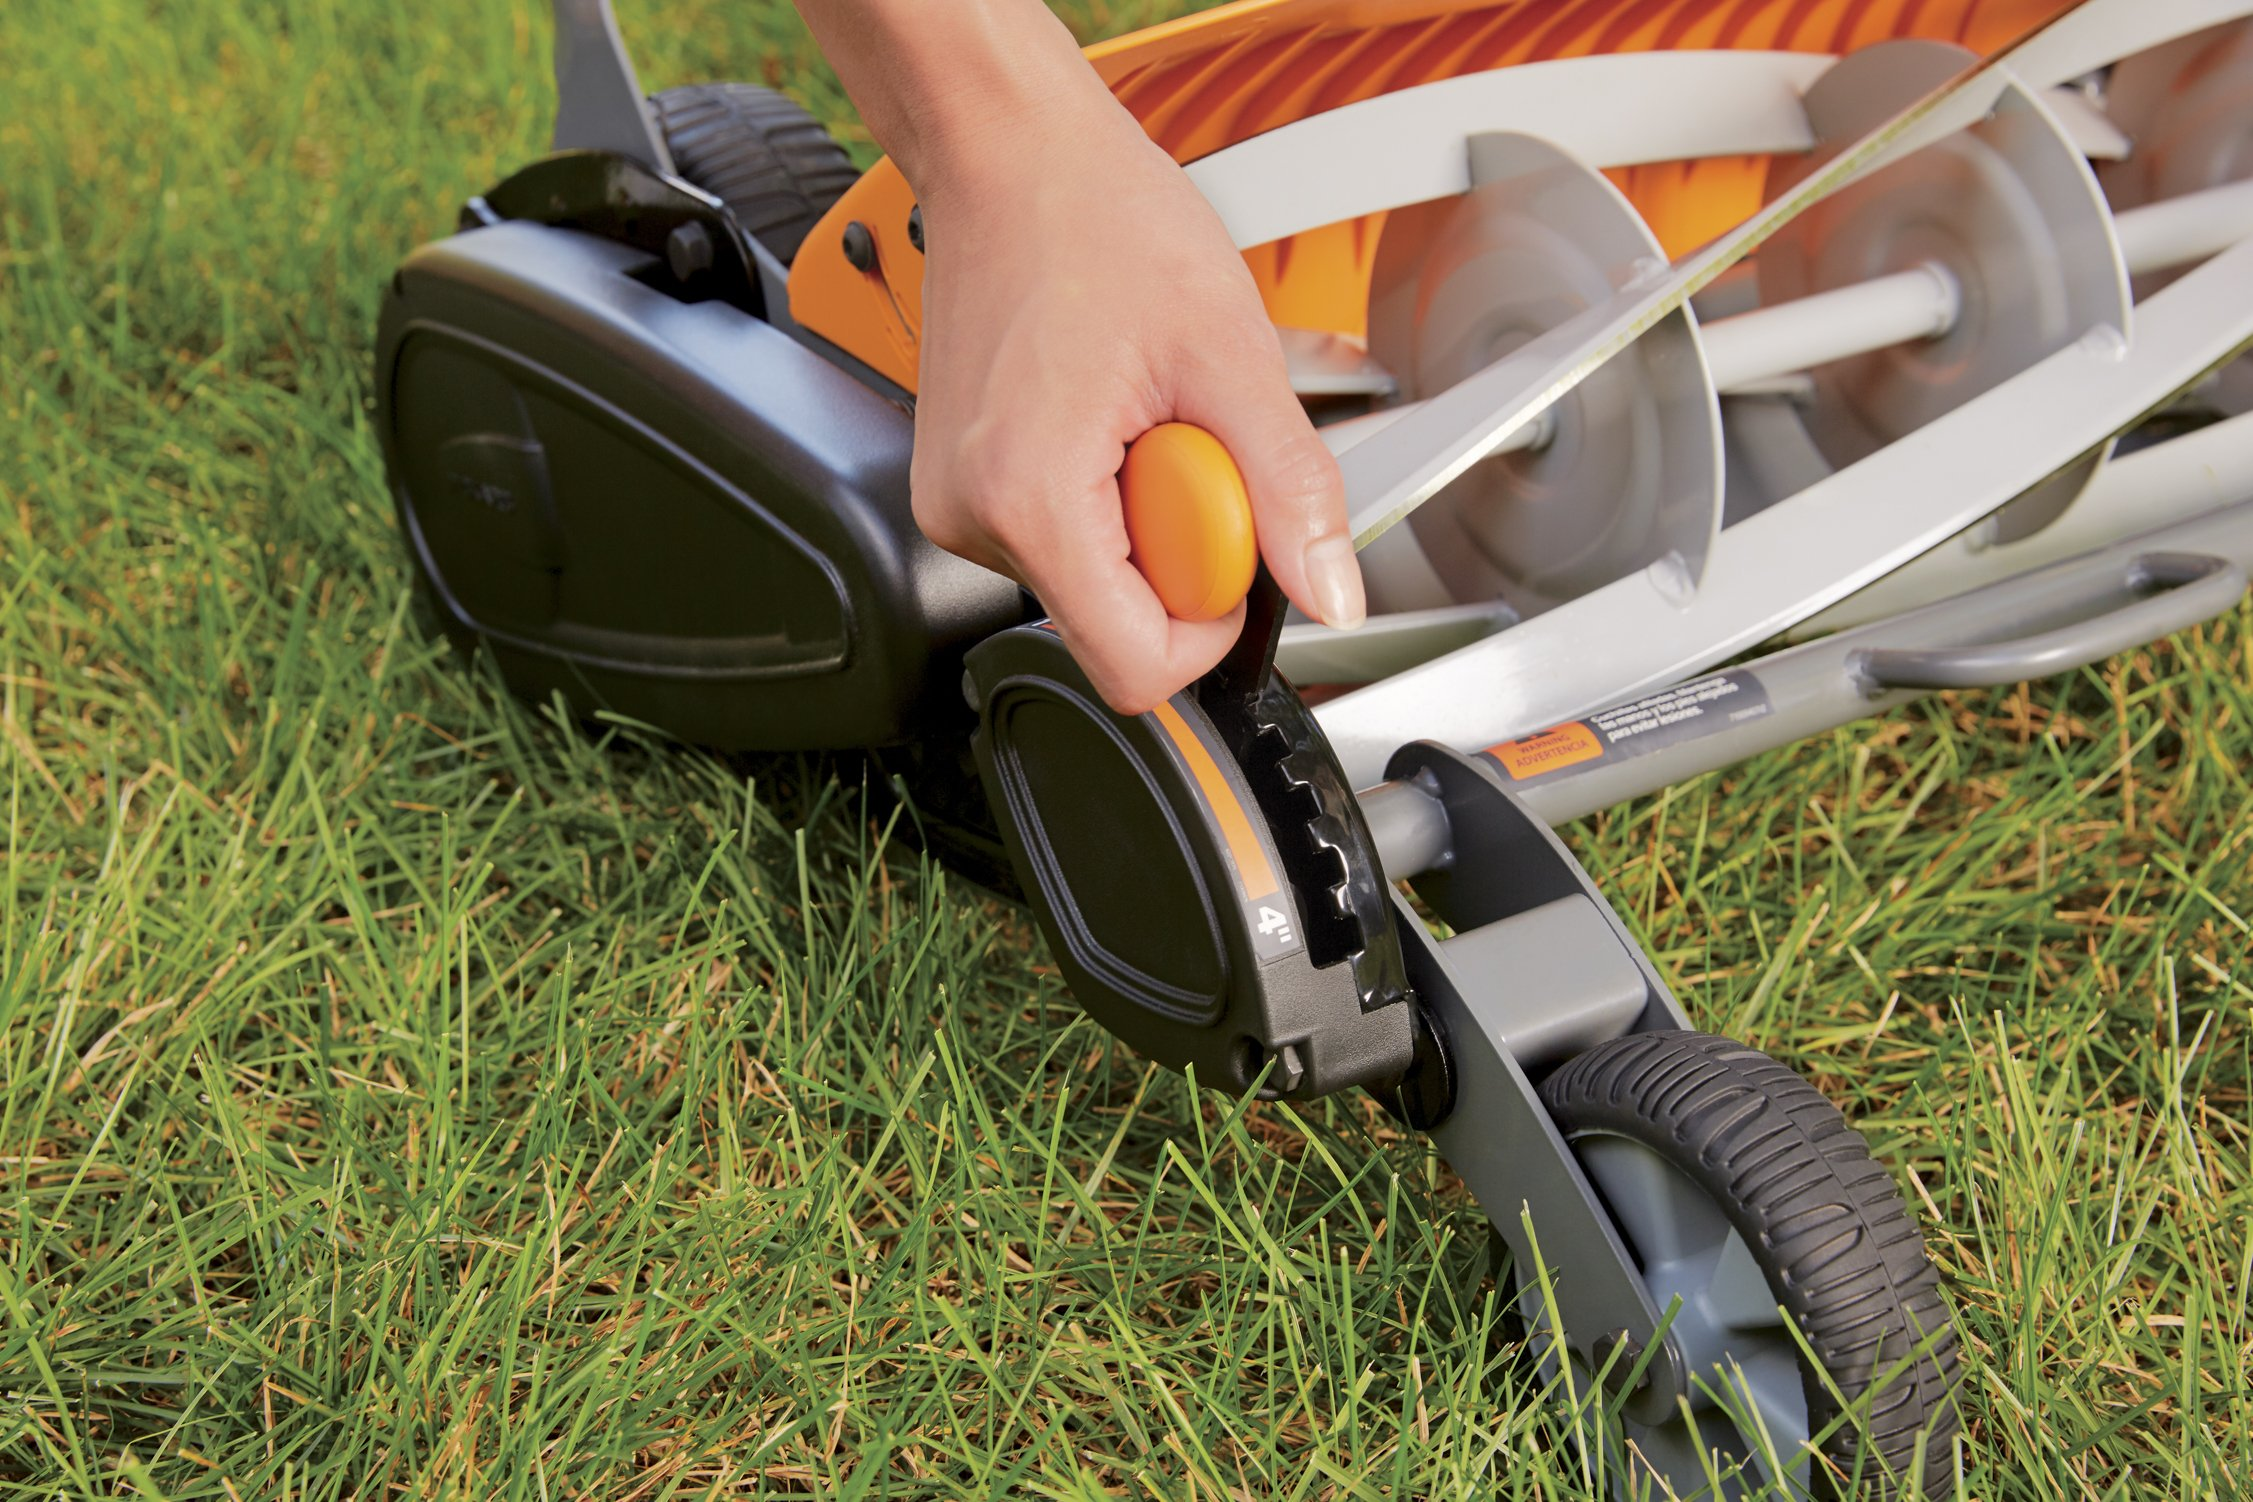 Fiskars staysharp max reel mower 3 the smart design of reel mower offers a cleaner cut without the hassles of gasoline, oil, battery charging, electrical cords or loud engine noise a combination of advanced technologies make the staysharp plus reel mower 40-percent easier to push than other reel mowers patent-pending inertia drive reel delivers 75-percent more cutting power to blast through twigs, weeds and tough spots that would jam other reel mowers